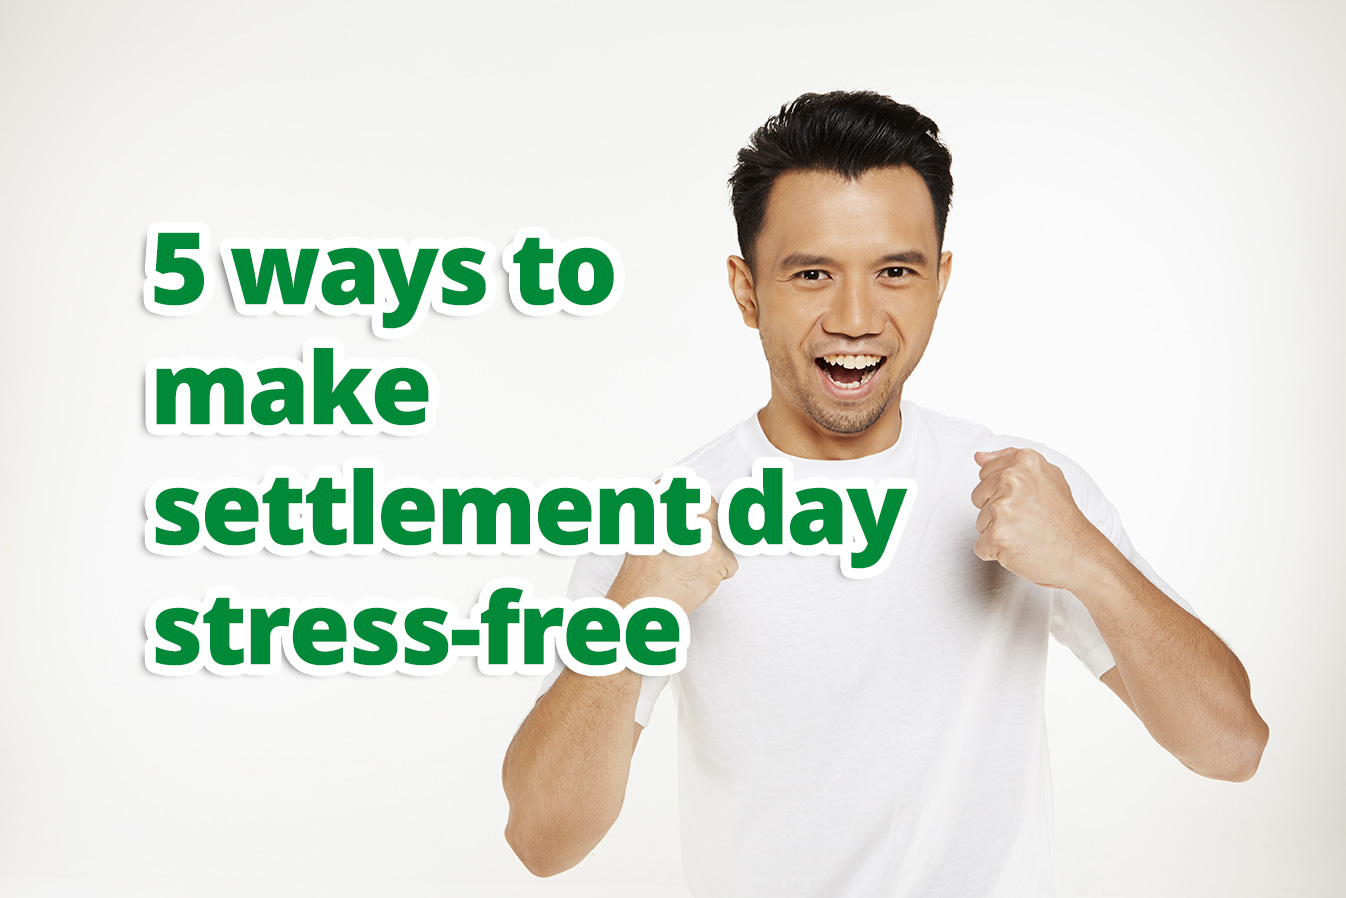 5 ways to make settlement day stress-free